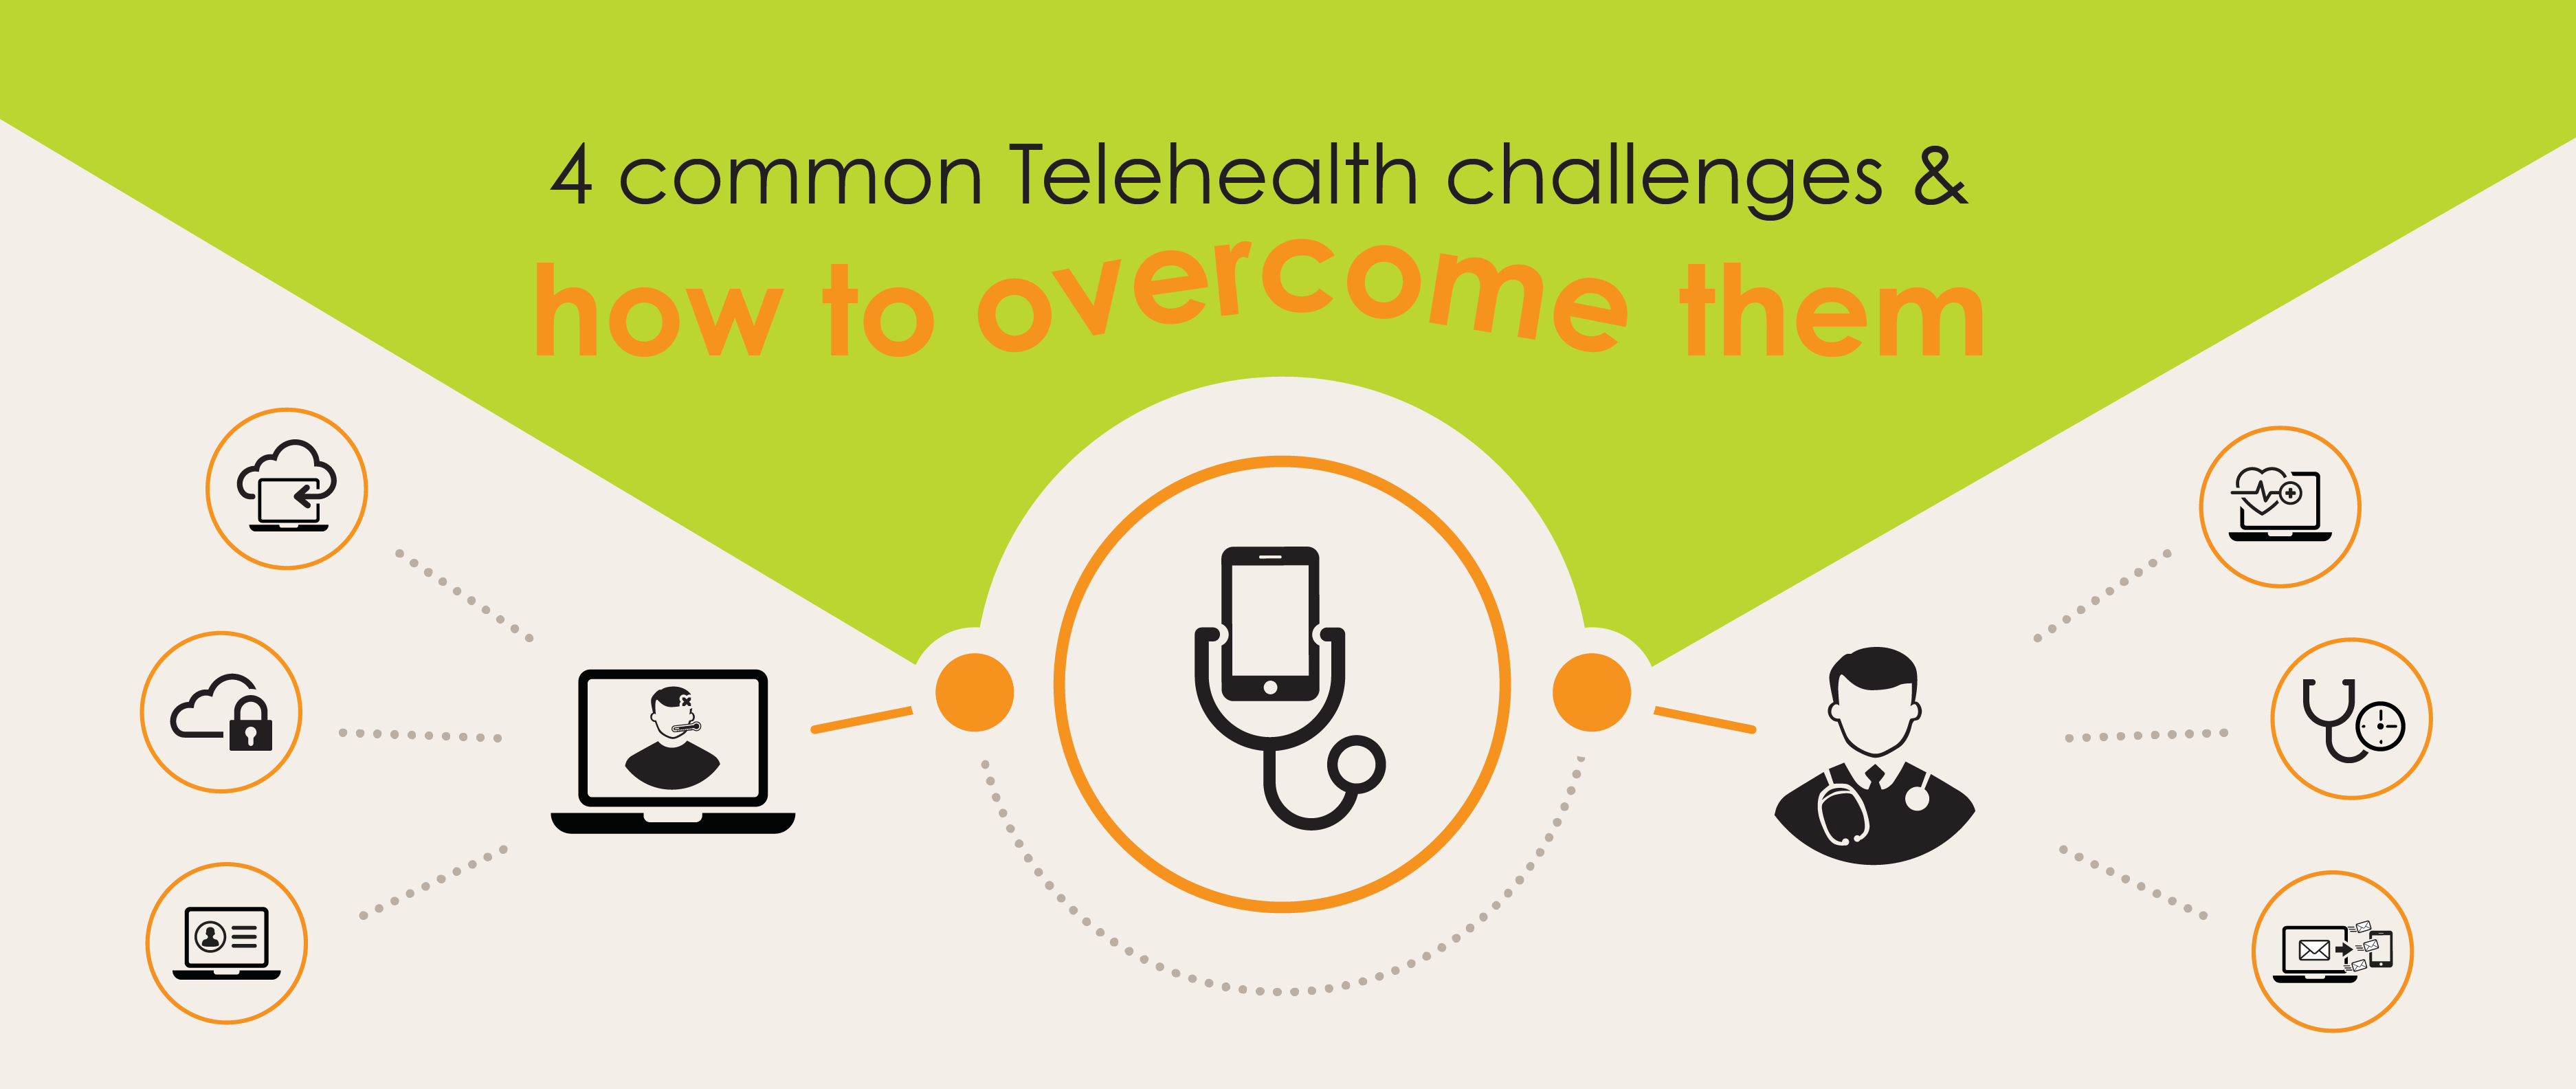 4 common Telehealth challenges and how to overcome them